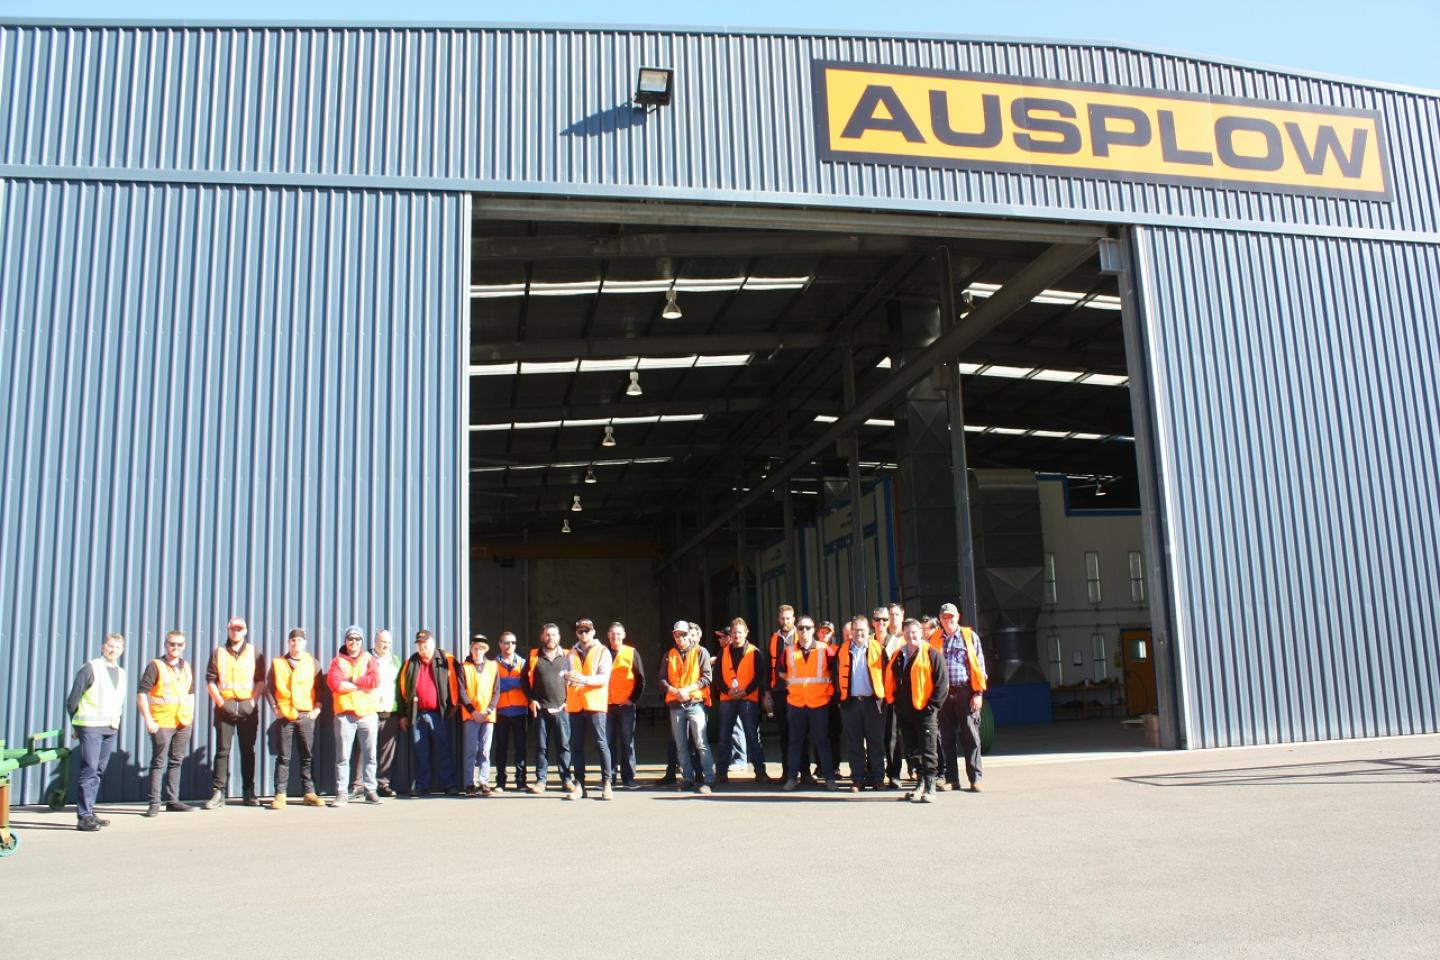 The Boekeman Machinery tour group outside the factory yesterday after completing a walk-through of all the manufacturing processes. The group later were given a briefing on Ausplow products and the company's vision along with the opportunity to ask questions.